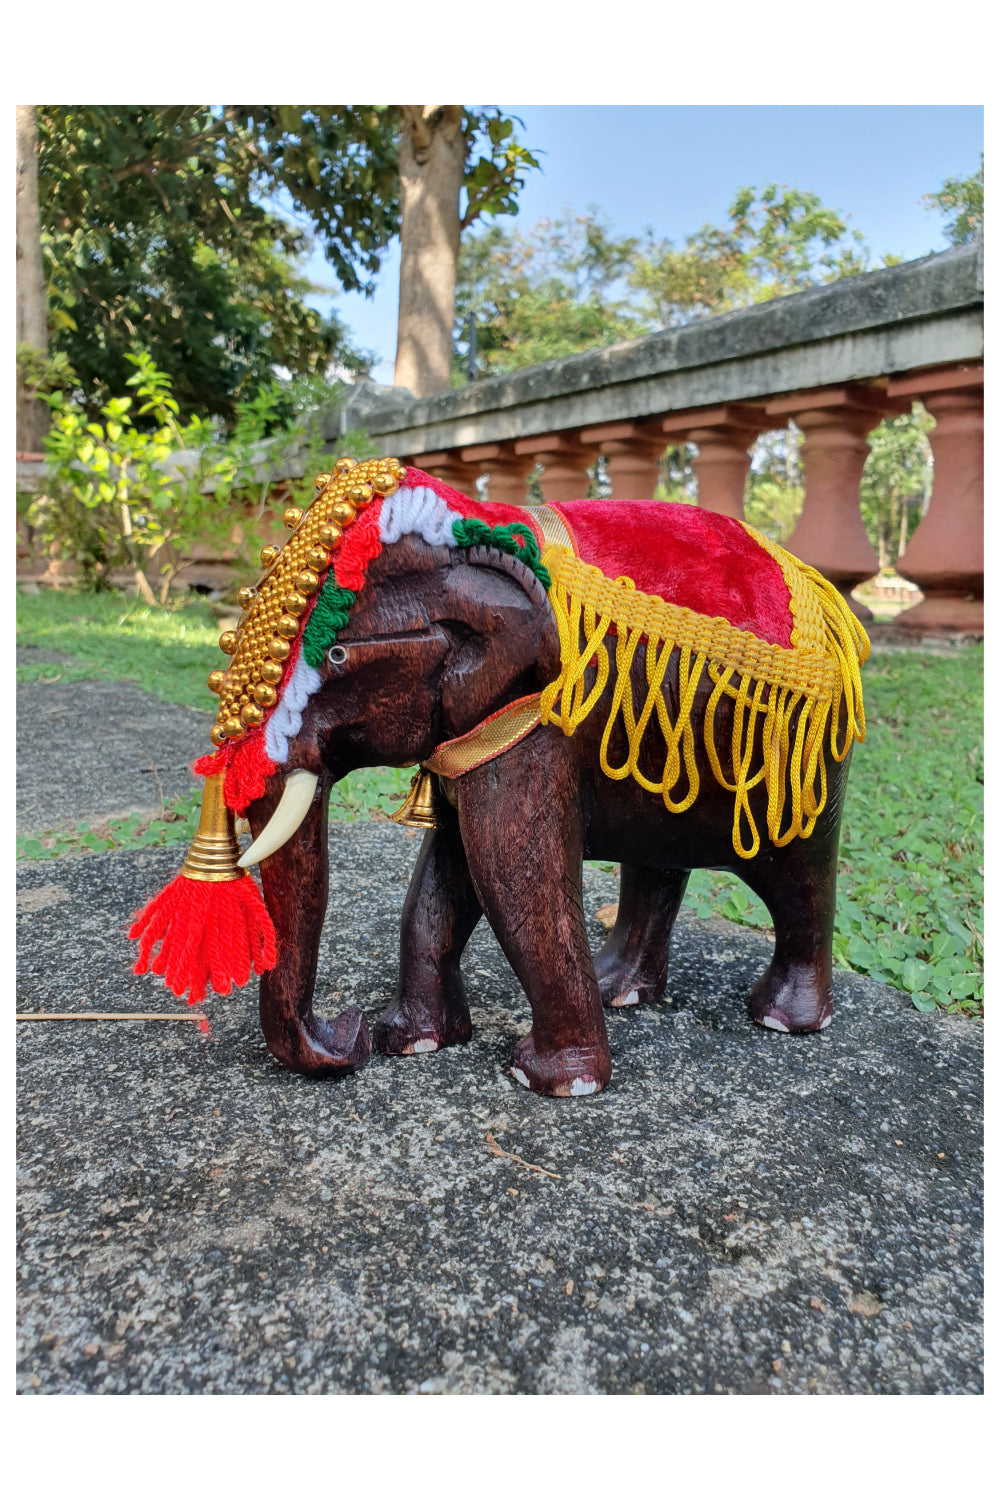 Southloom Handmade Temple Elephant Handicraft (Carved from Mahogany Wood) 6 Inches